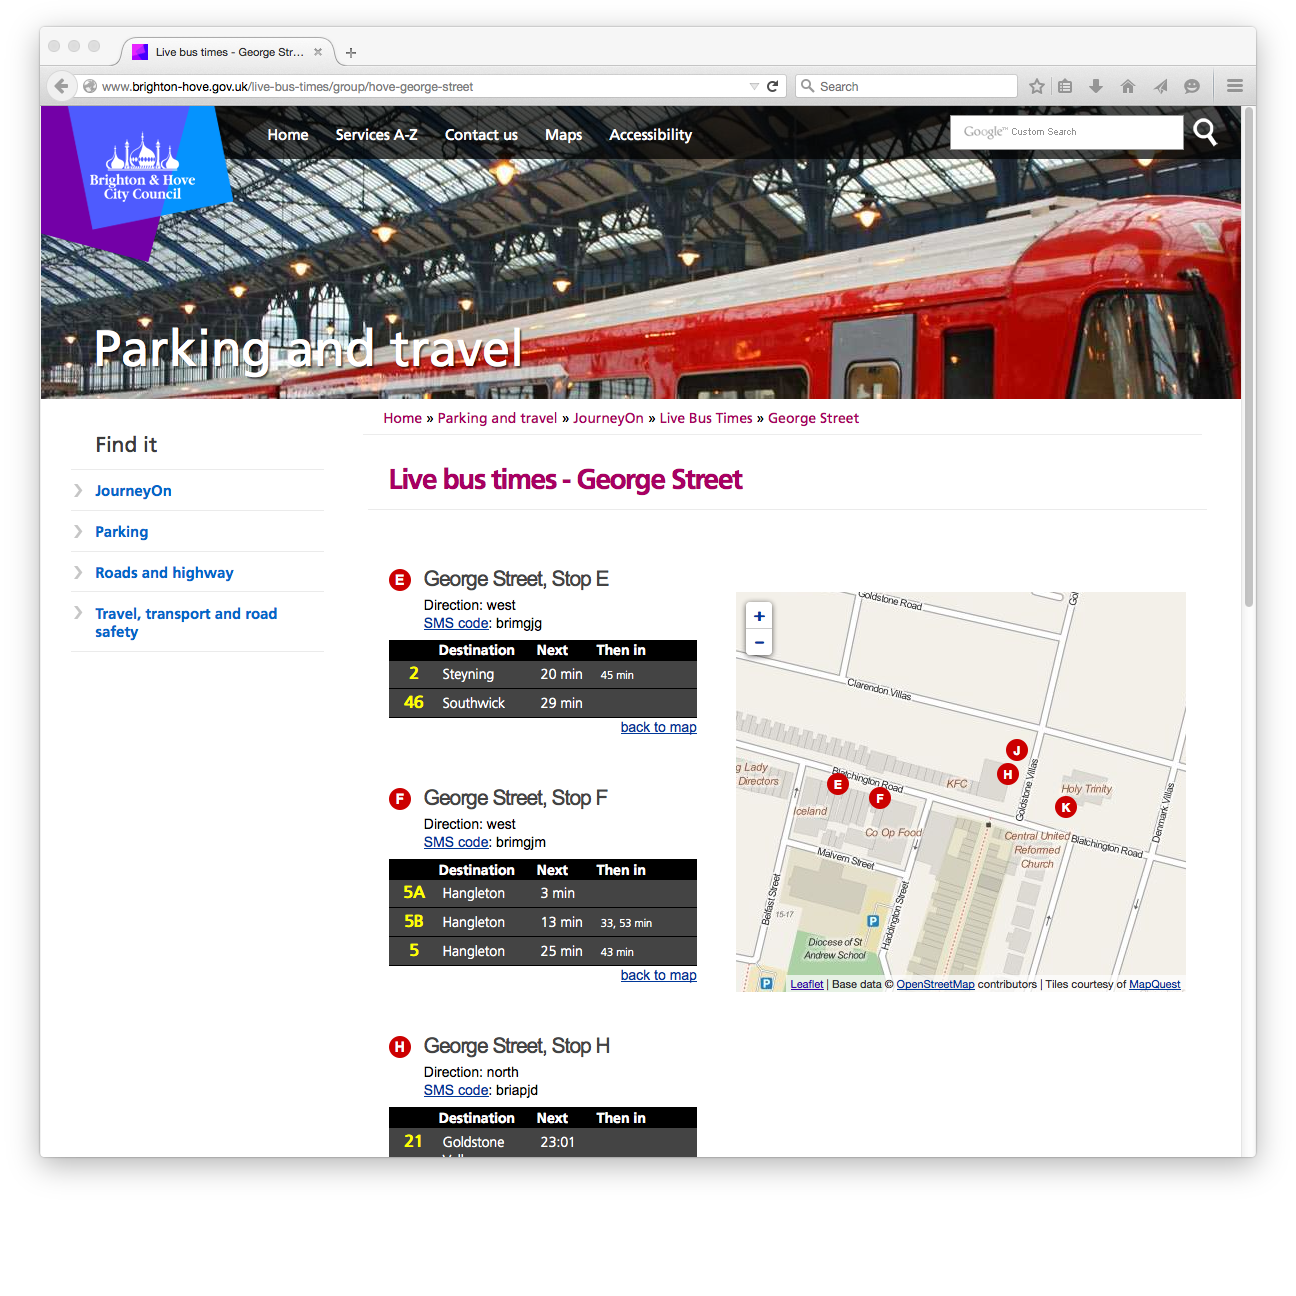 A screenshot of the live bus times page for George Street in Hove